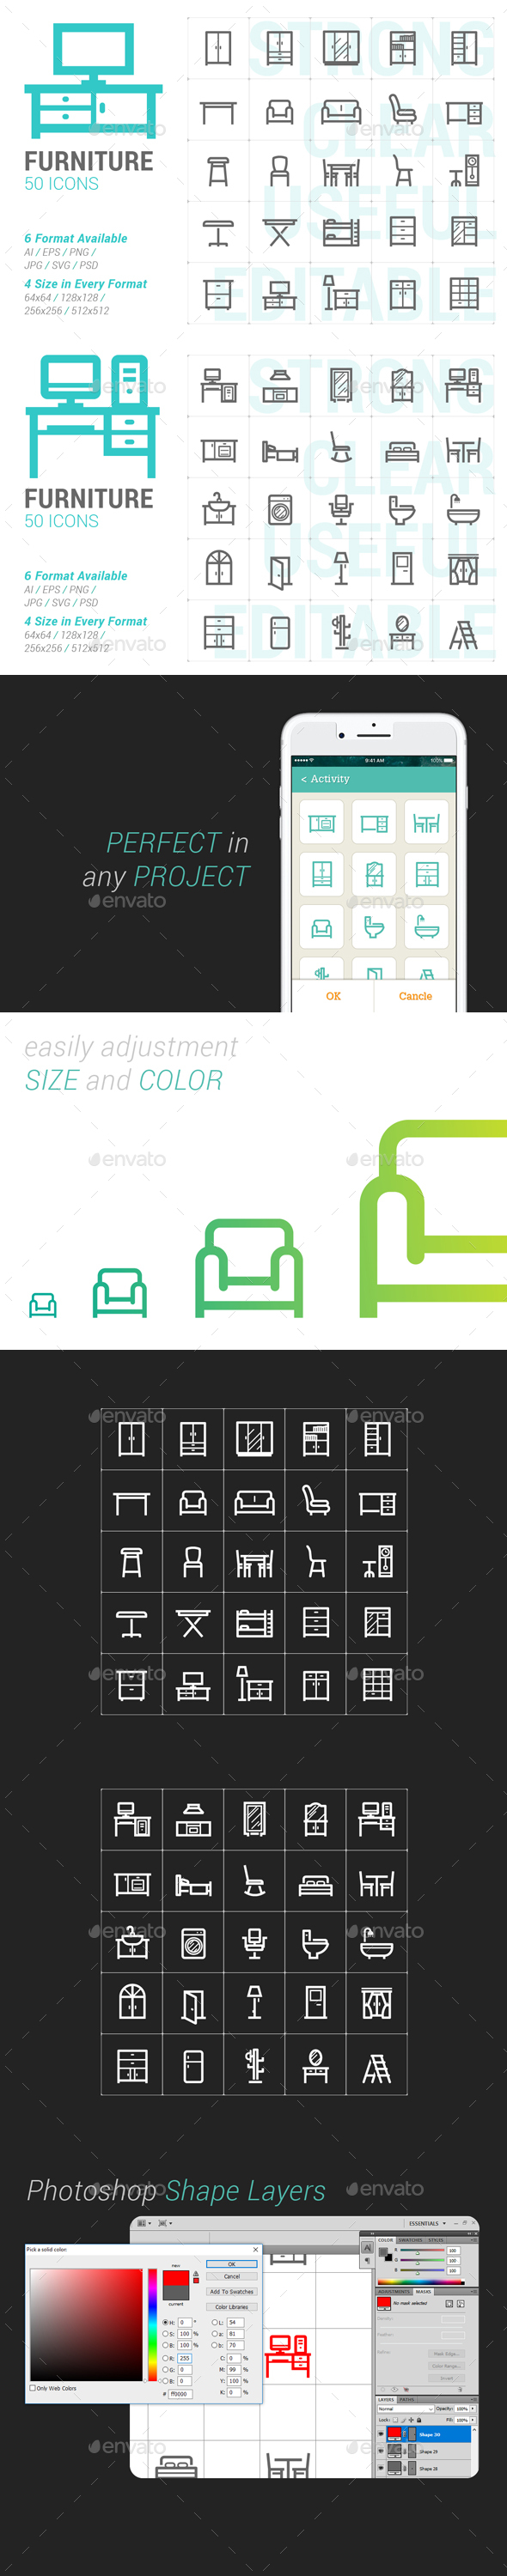 Furniture Mini Icon - Objects Icons